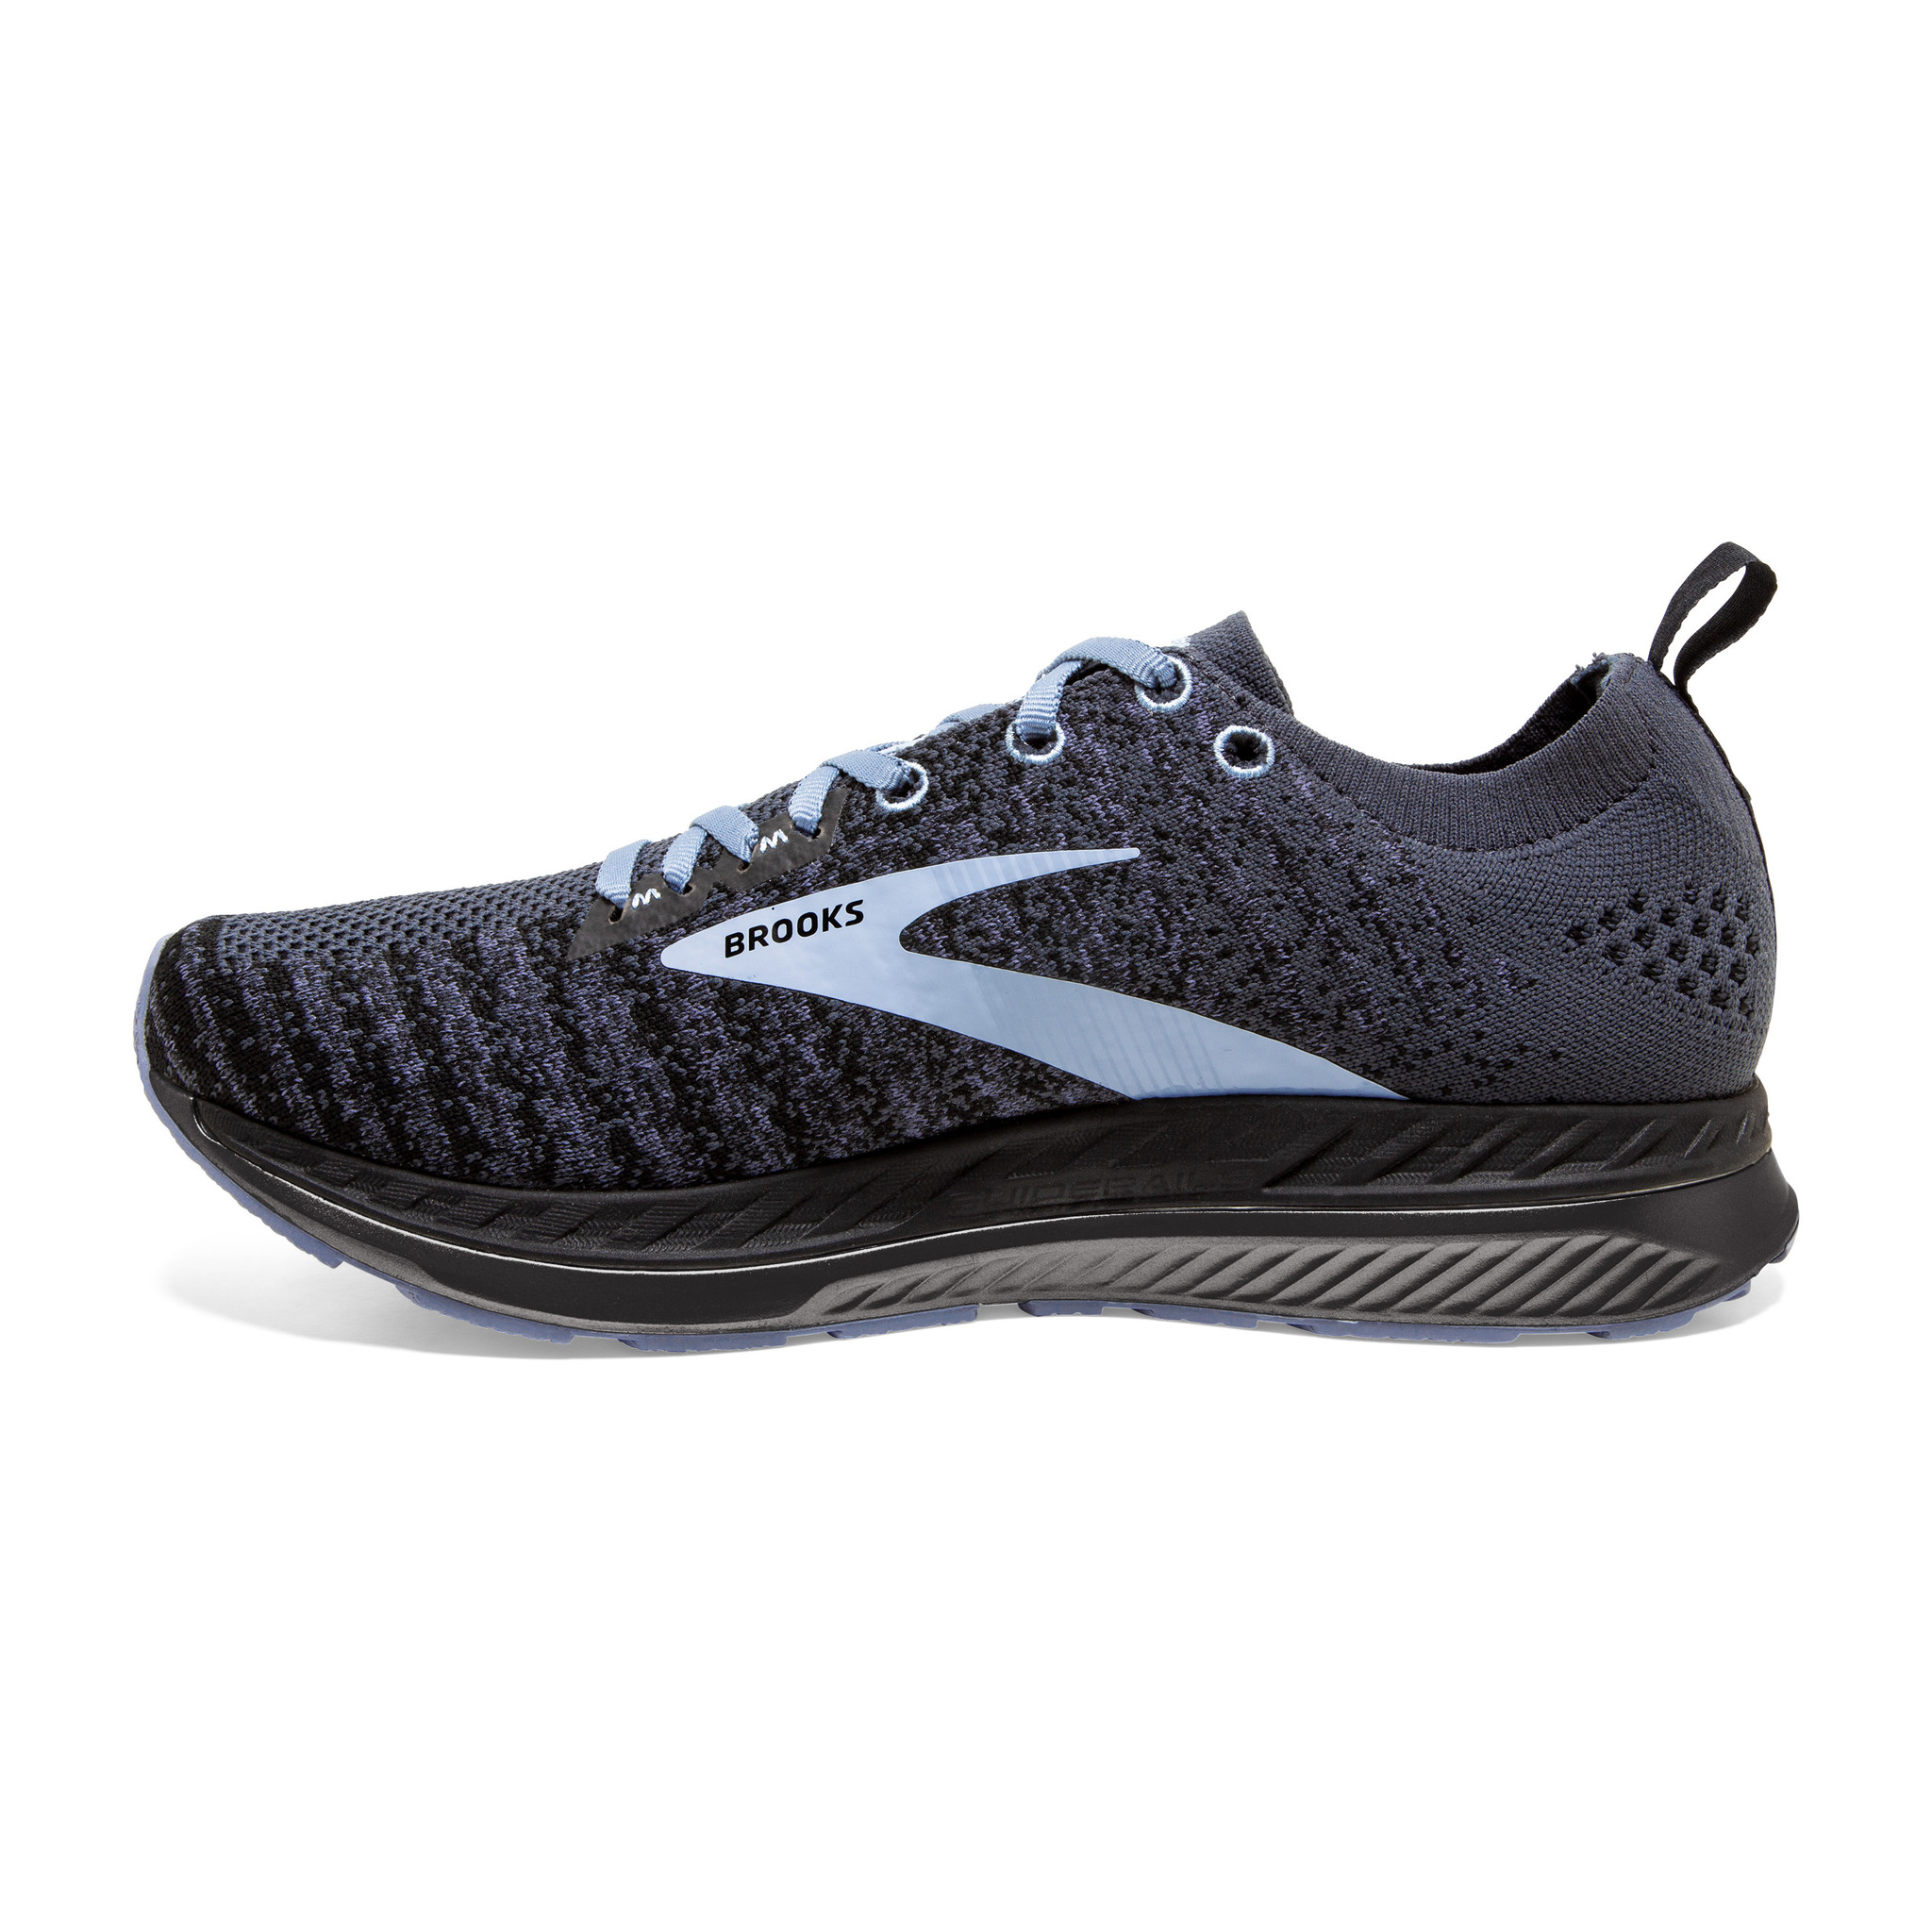 Brooks Brooks Bedlam 2 - Women